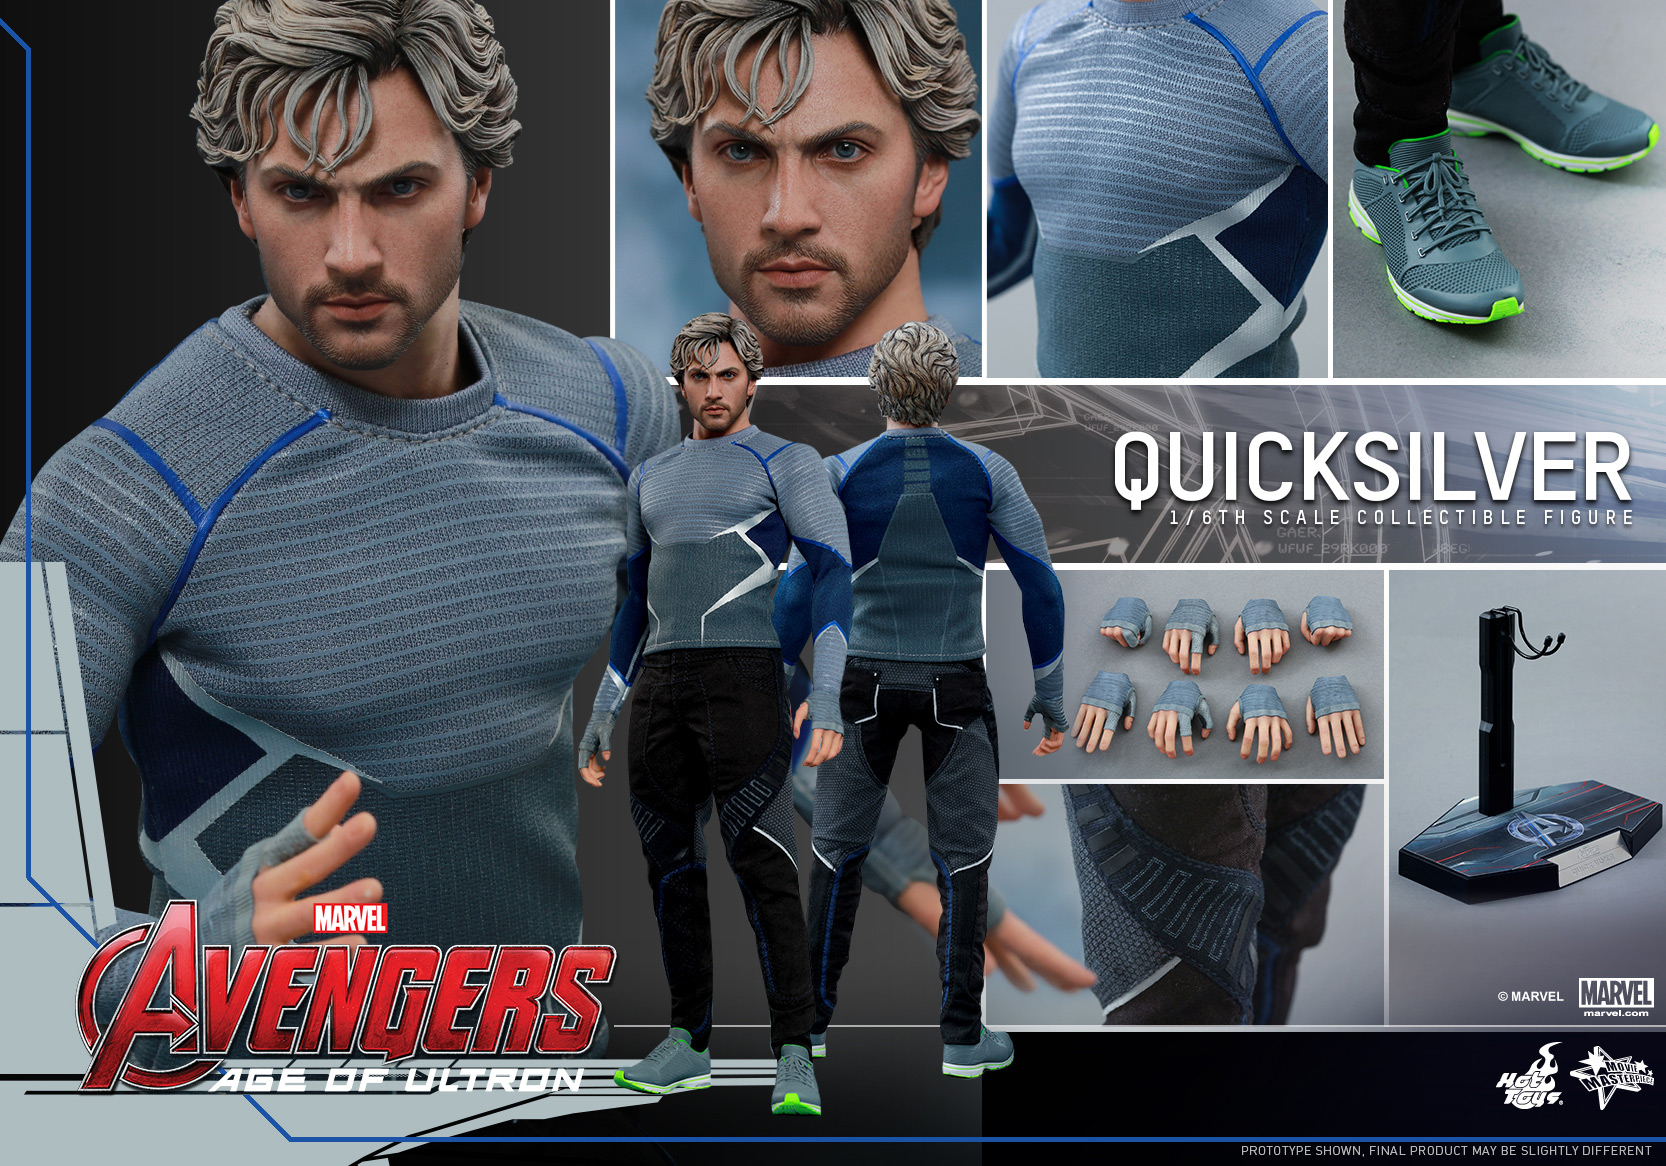 [Hot Toys] The Avengers: Age of Ultron - Quicksilver Up_15